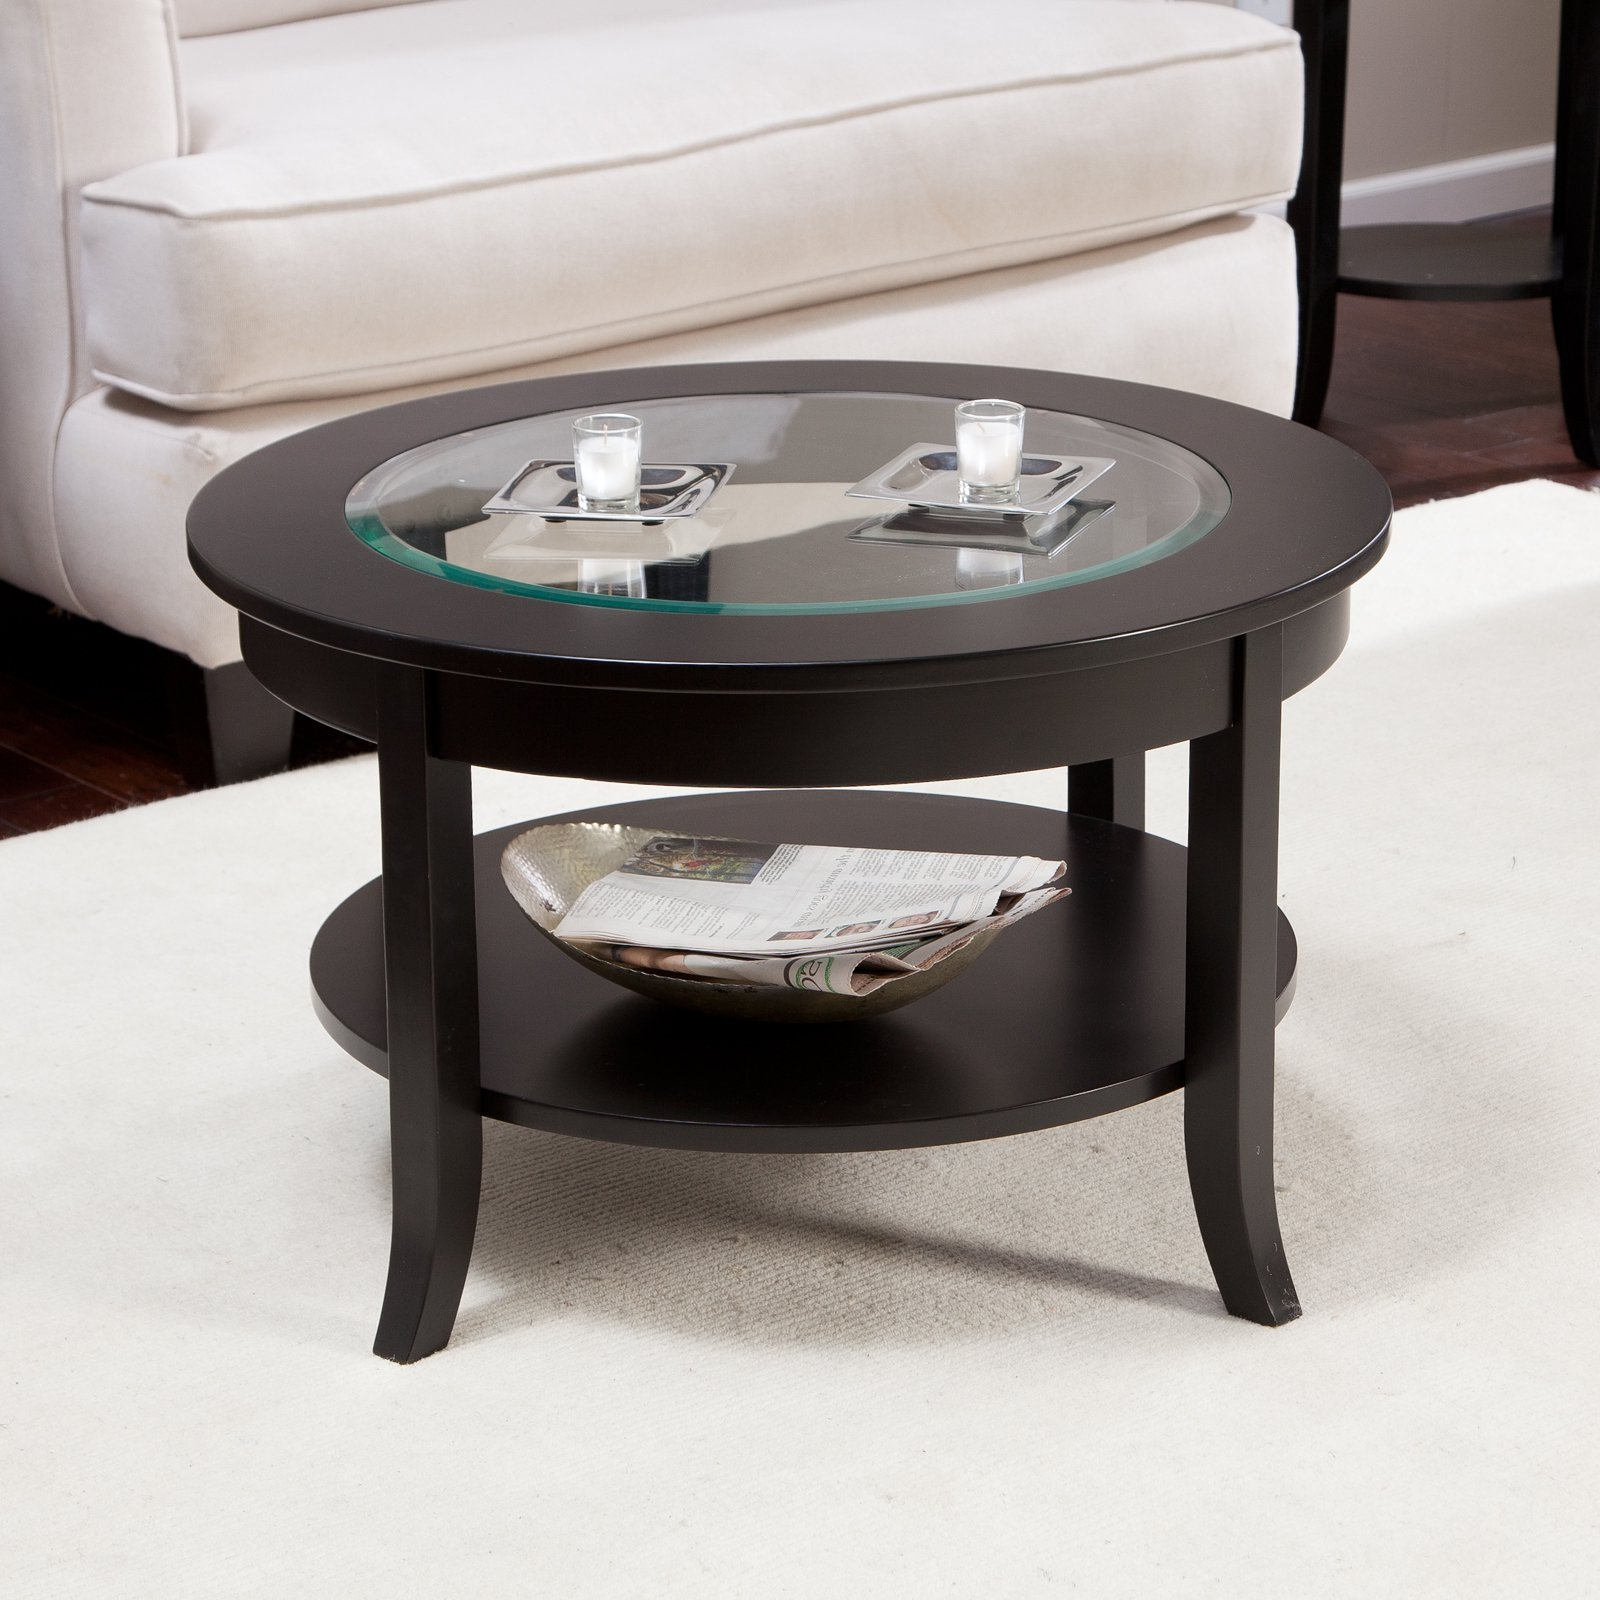 small oval glass top coffee table round coffees tables square design end console broyhill dining room furniture made out tree trunks white side for living accent mirrored buffet